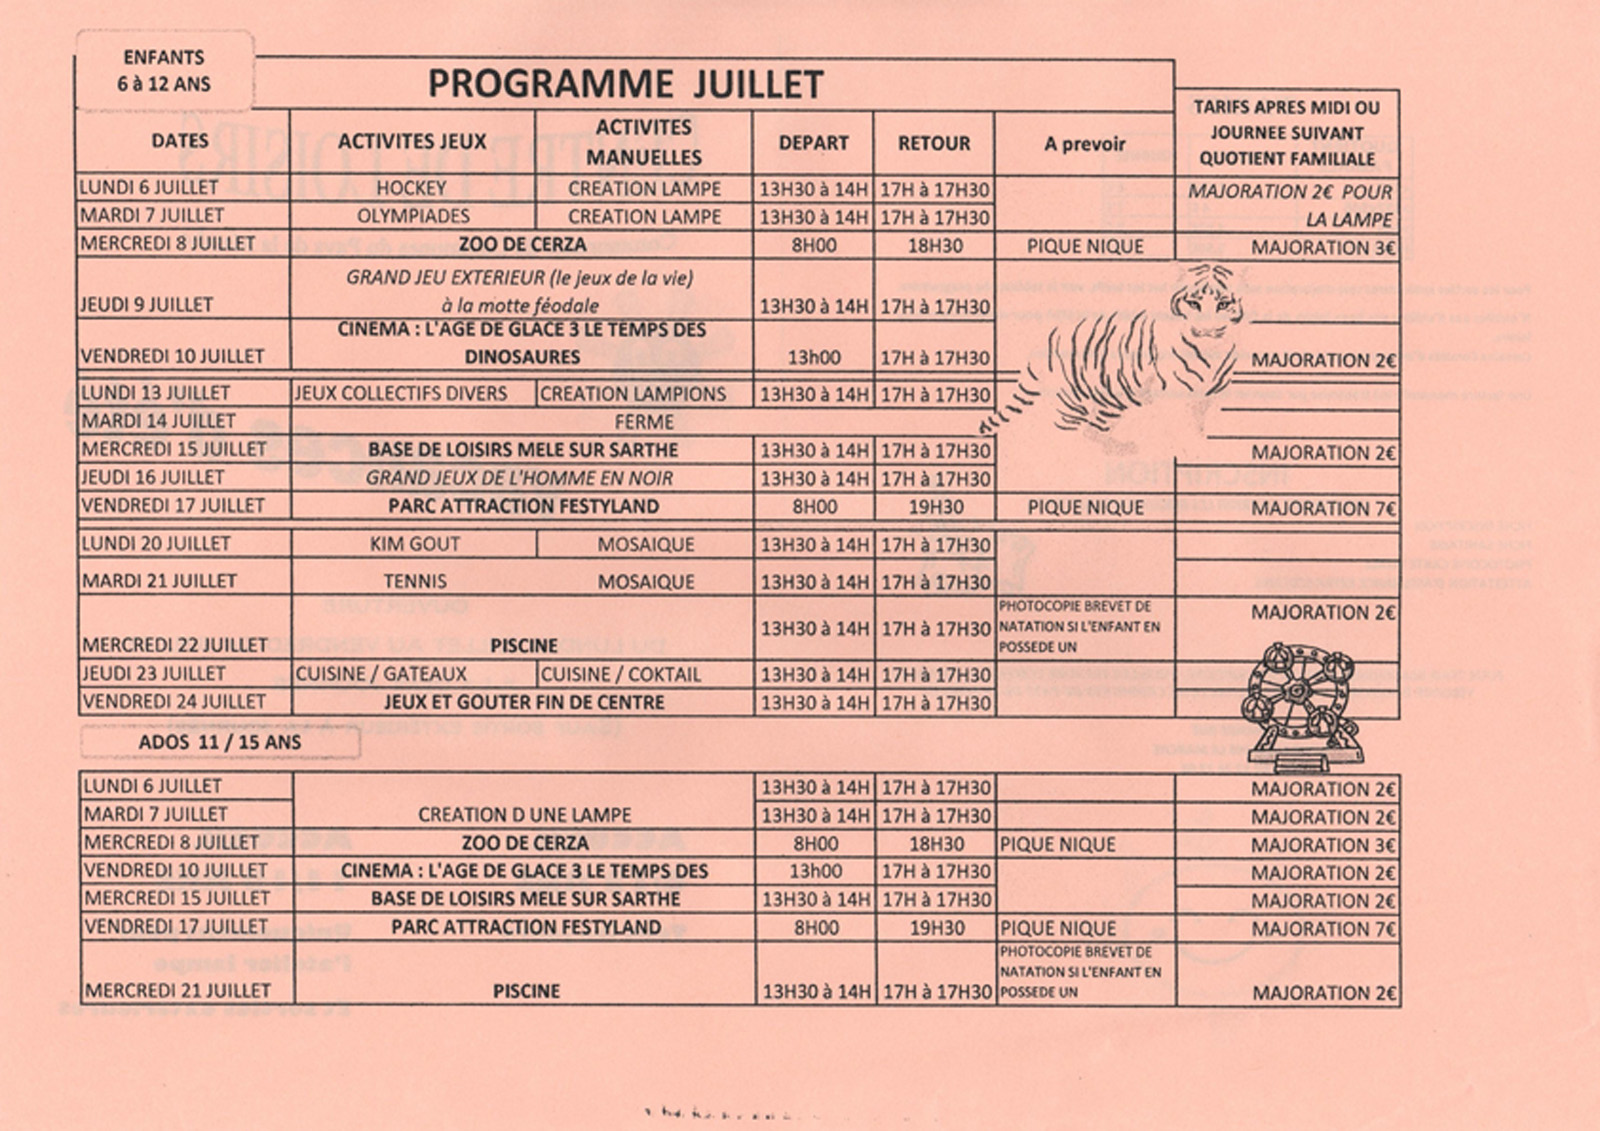 images/2009_ete_programme2_clsh.jpg